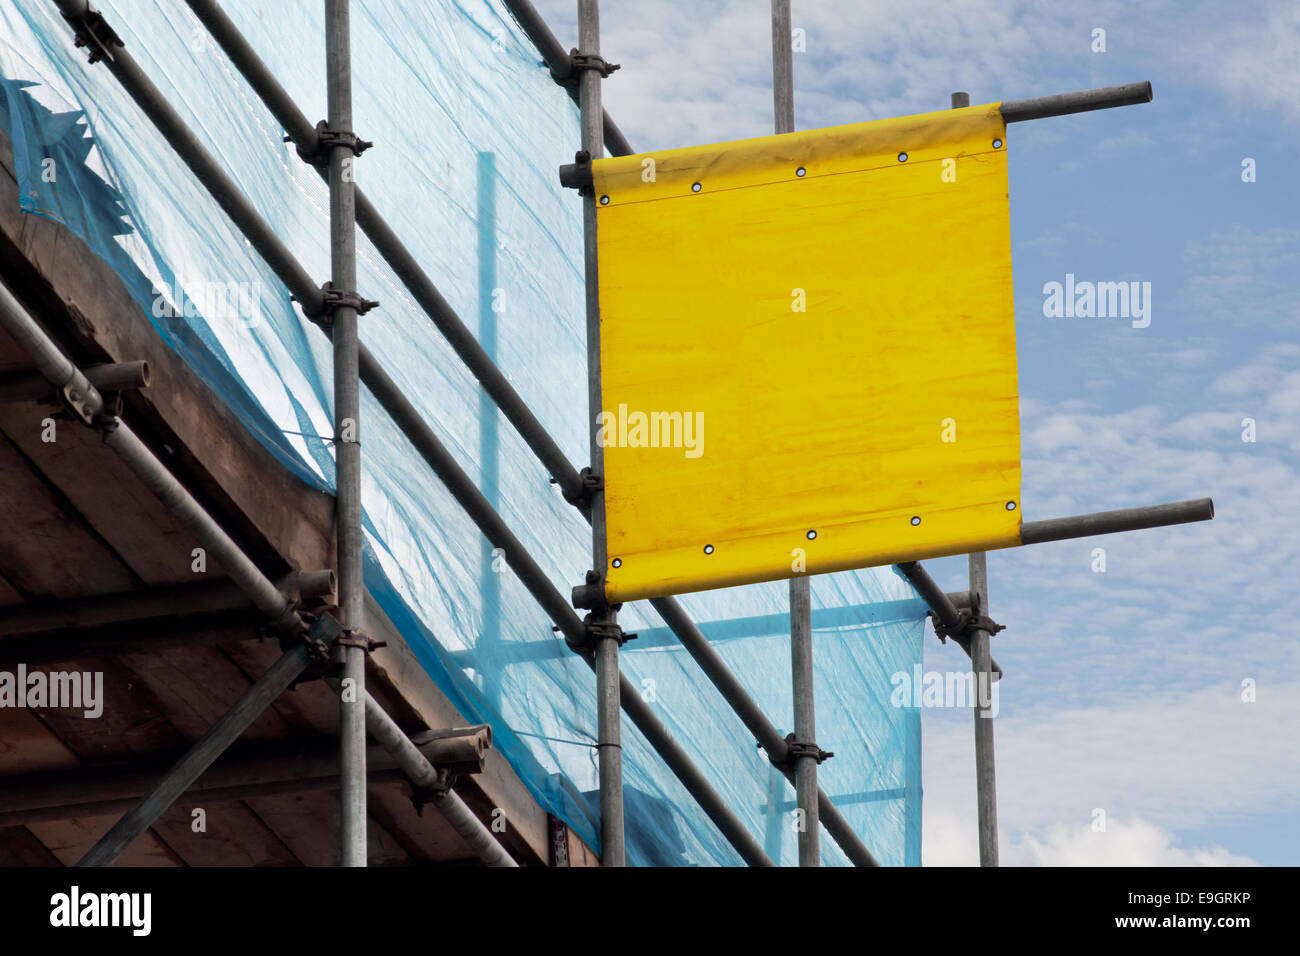 Blank scoffolding sign for advertising a scaffolders business erected on some scaffold a prime vantage point for - Stock Image